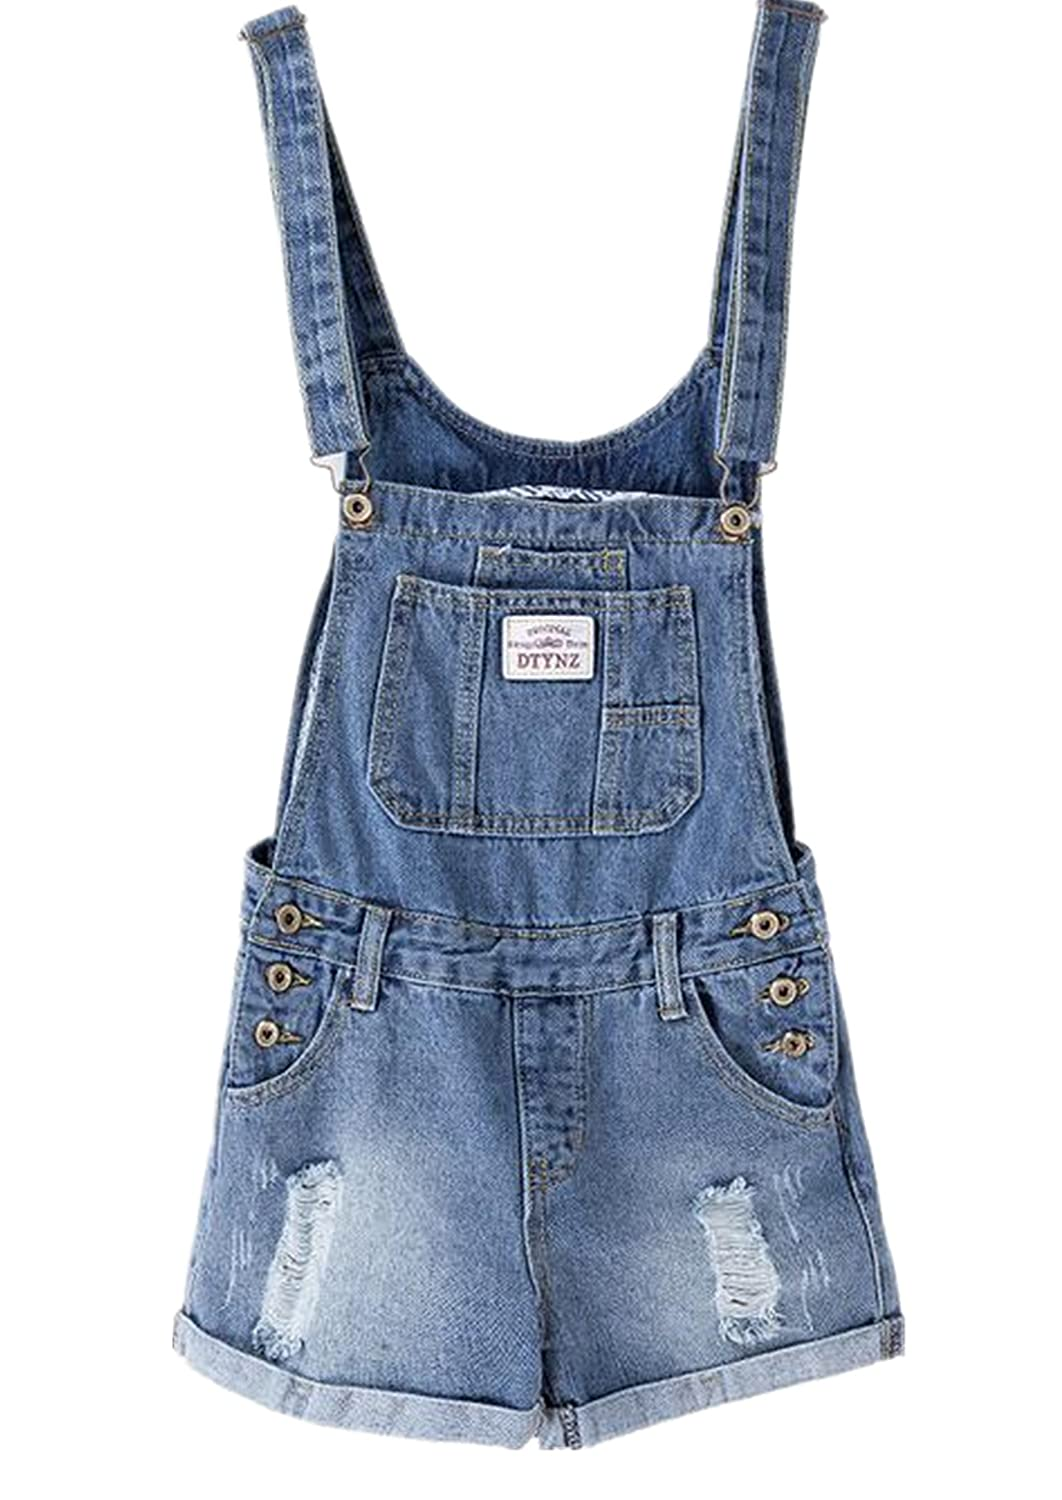 Lingswallow Women's Vintage Stretch Overalls Ripped Blue Cowboy Denim Shorts